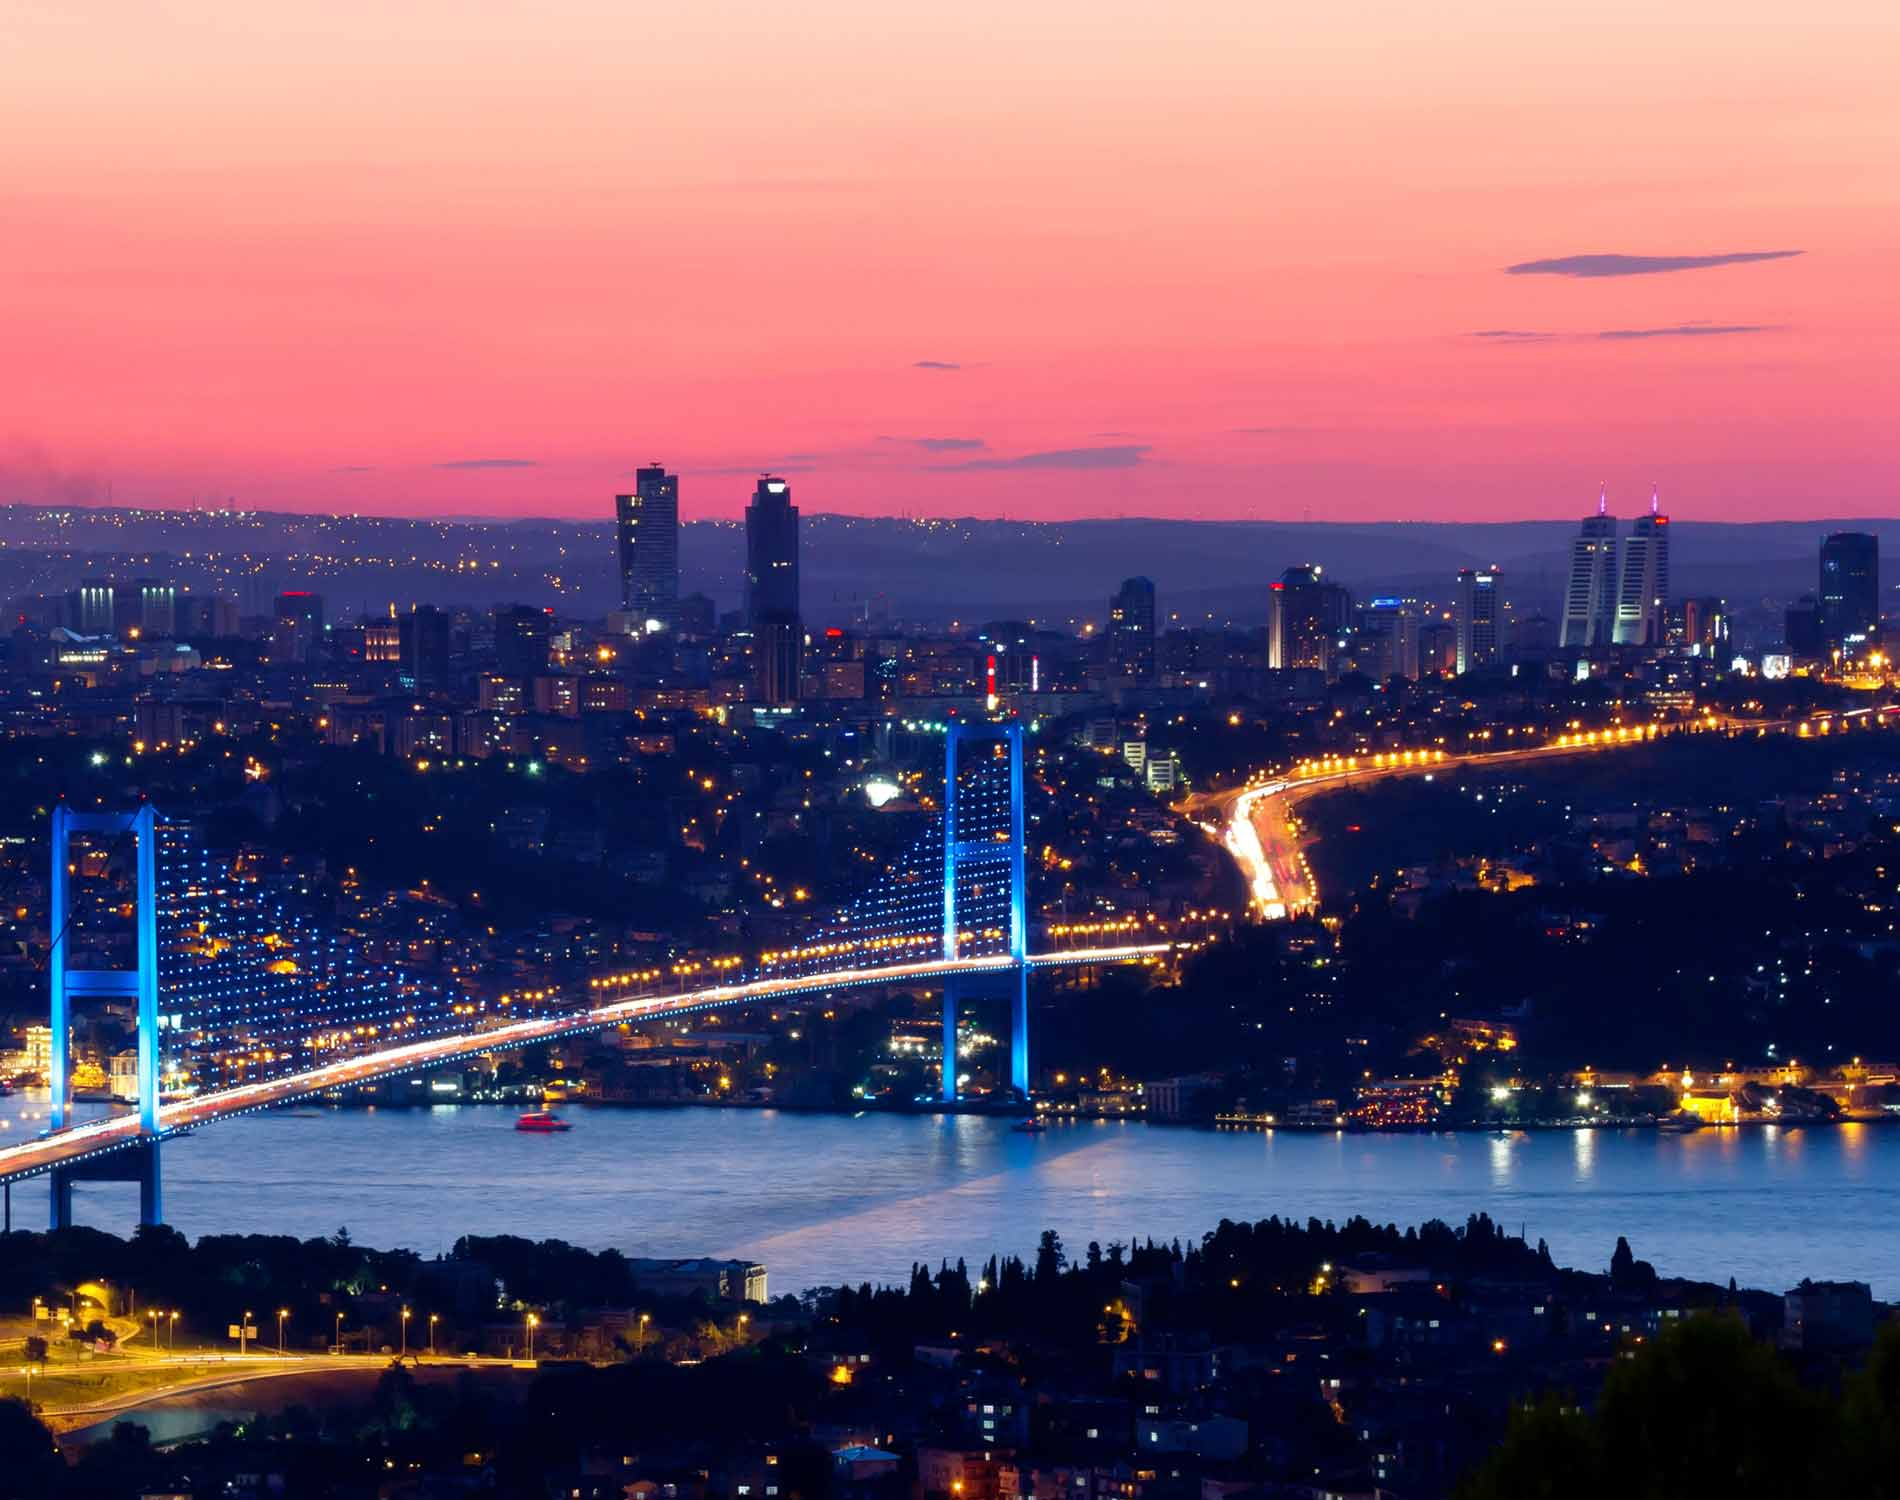 /-/media/images/website/background-images/offices/istanbul/istanbul-1.jpg